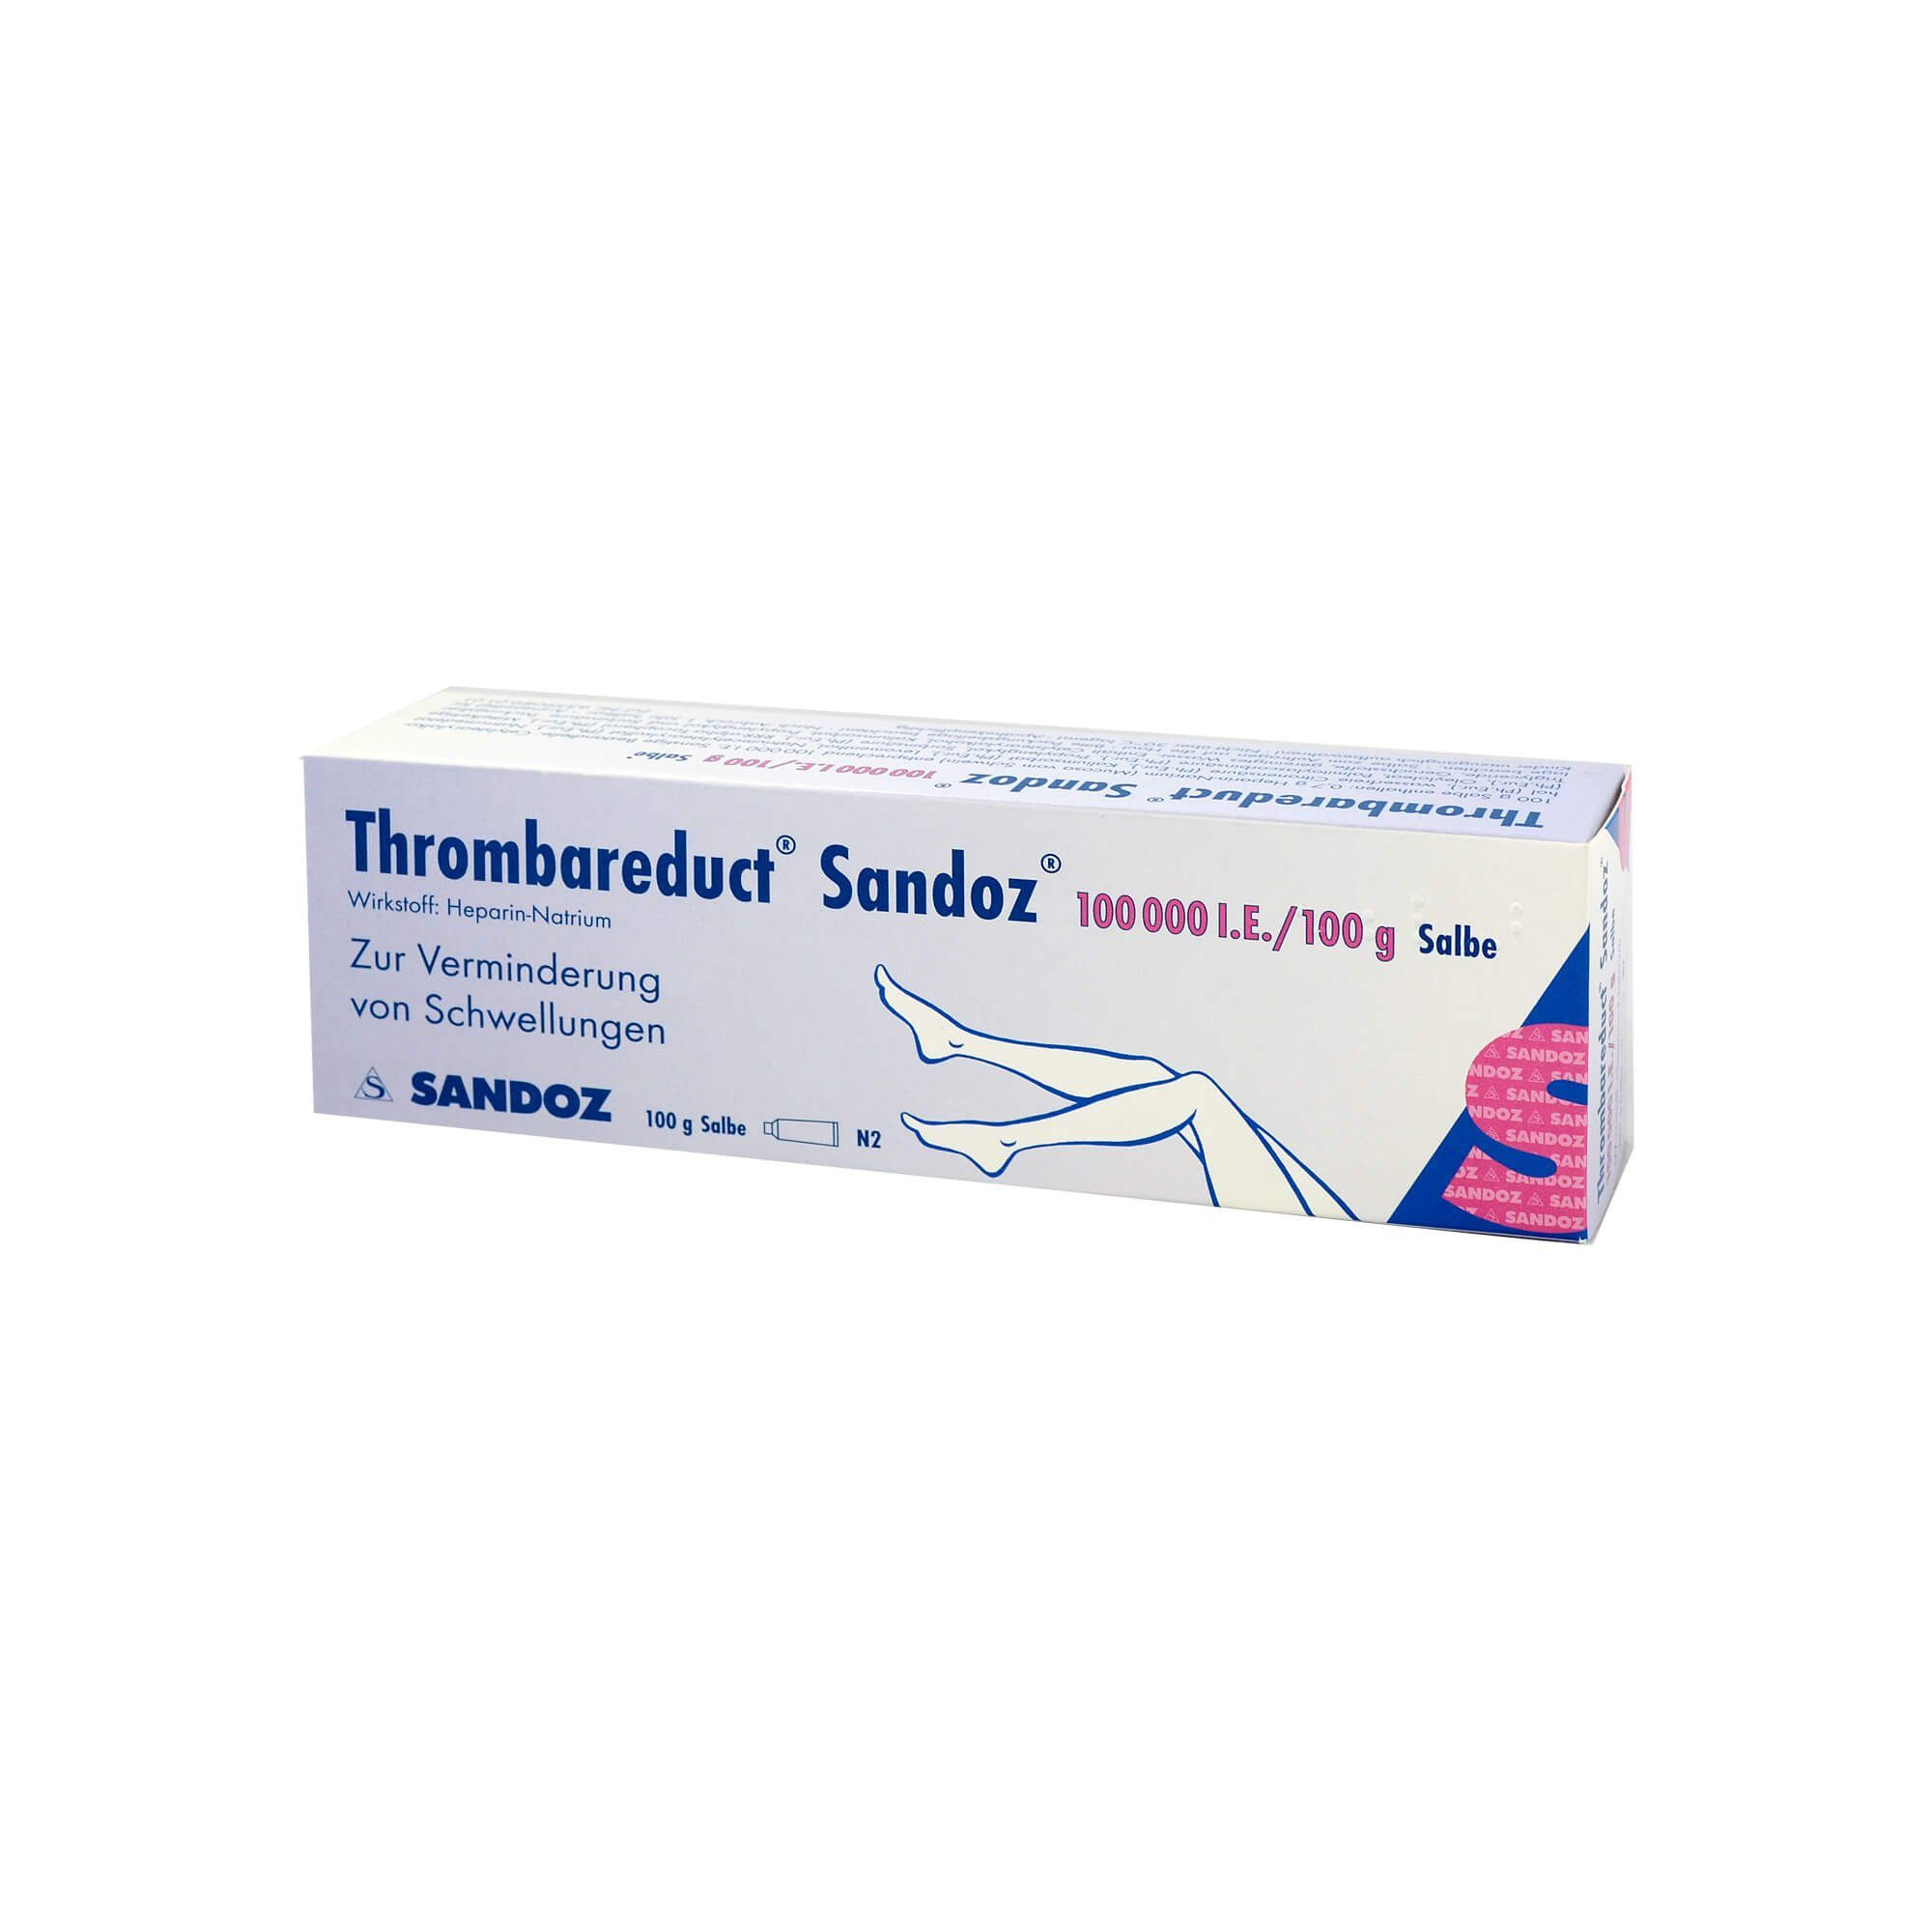 Thrombareduct Sandoz 100. 000 I.E. Salbe , 100 g